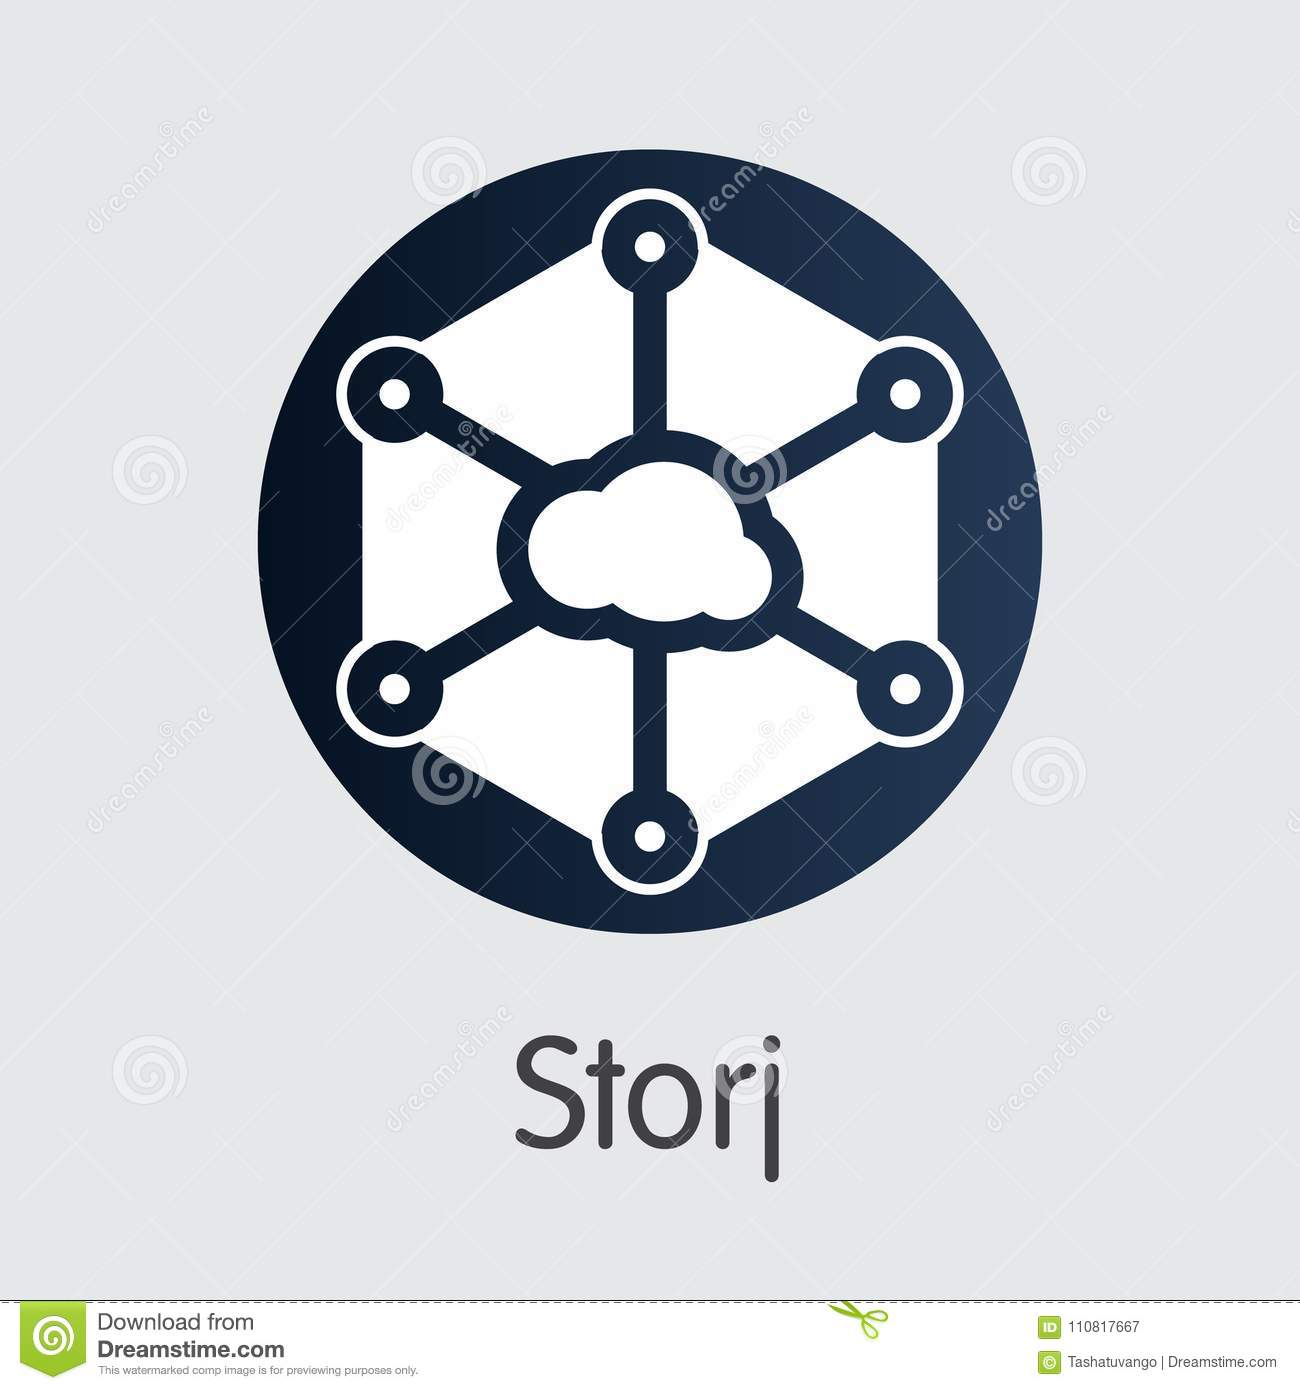 Storj Cryptocurrency Coin Vector Symbol Of Storj Stock Vector